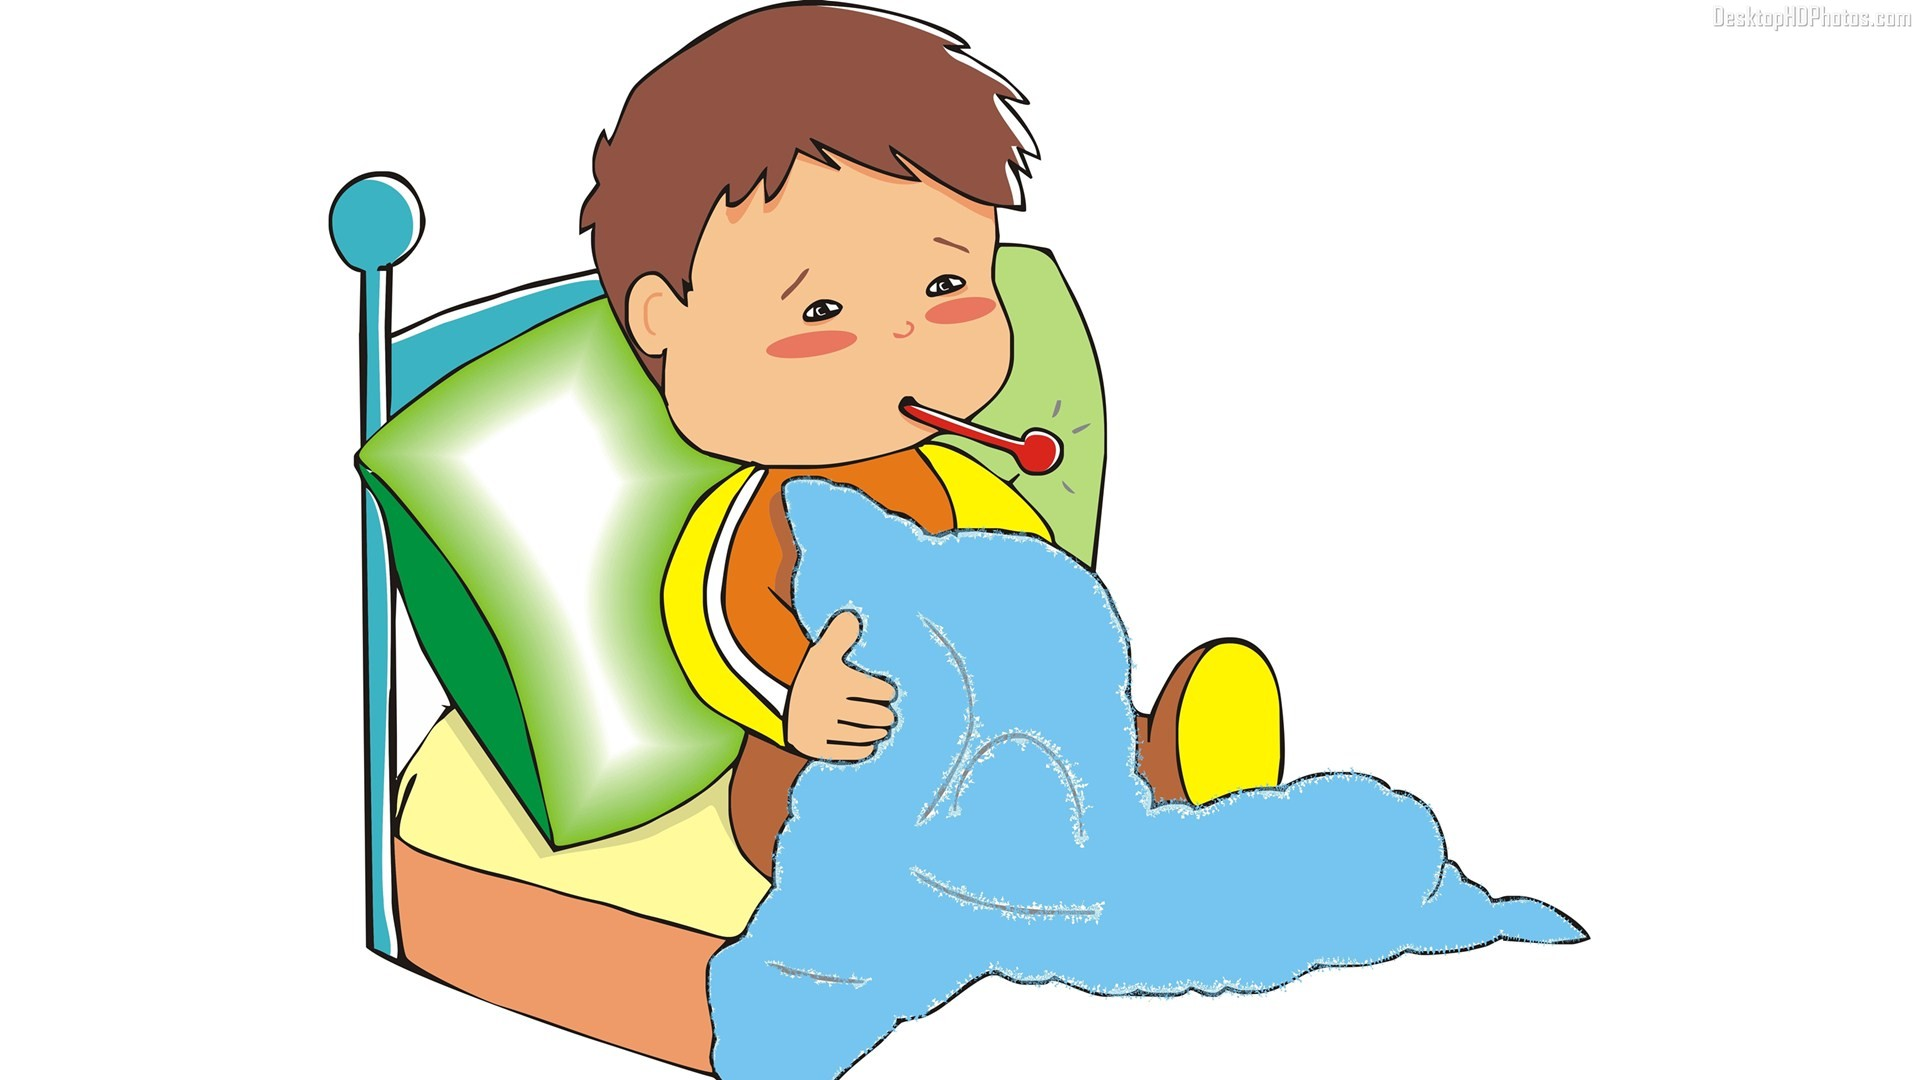 Hospital clipart sick boy - Sick In Bed PNG HD - Kid In Bed PNG HD